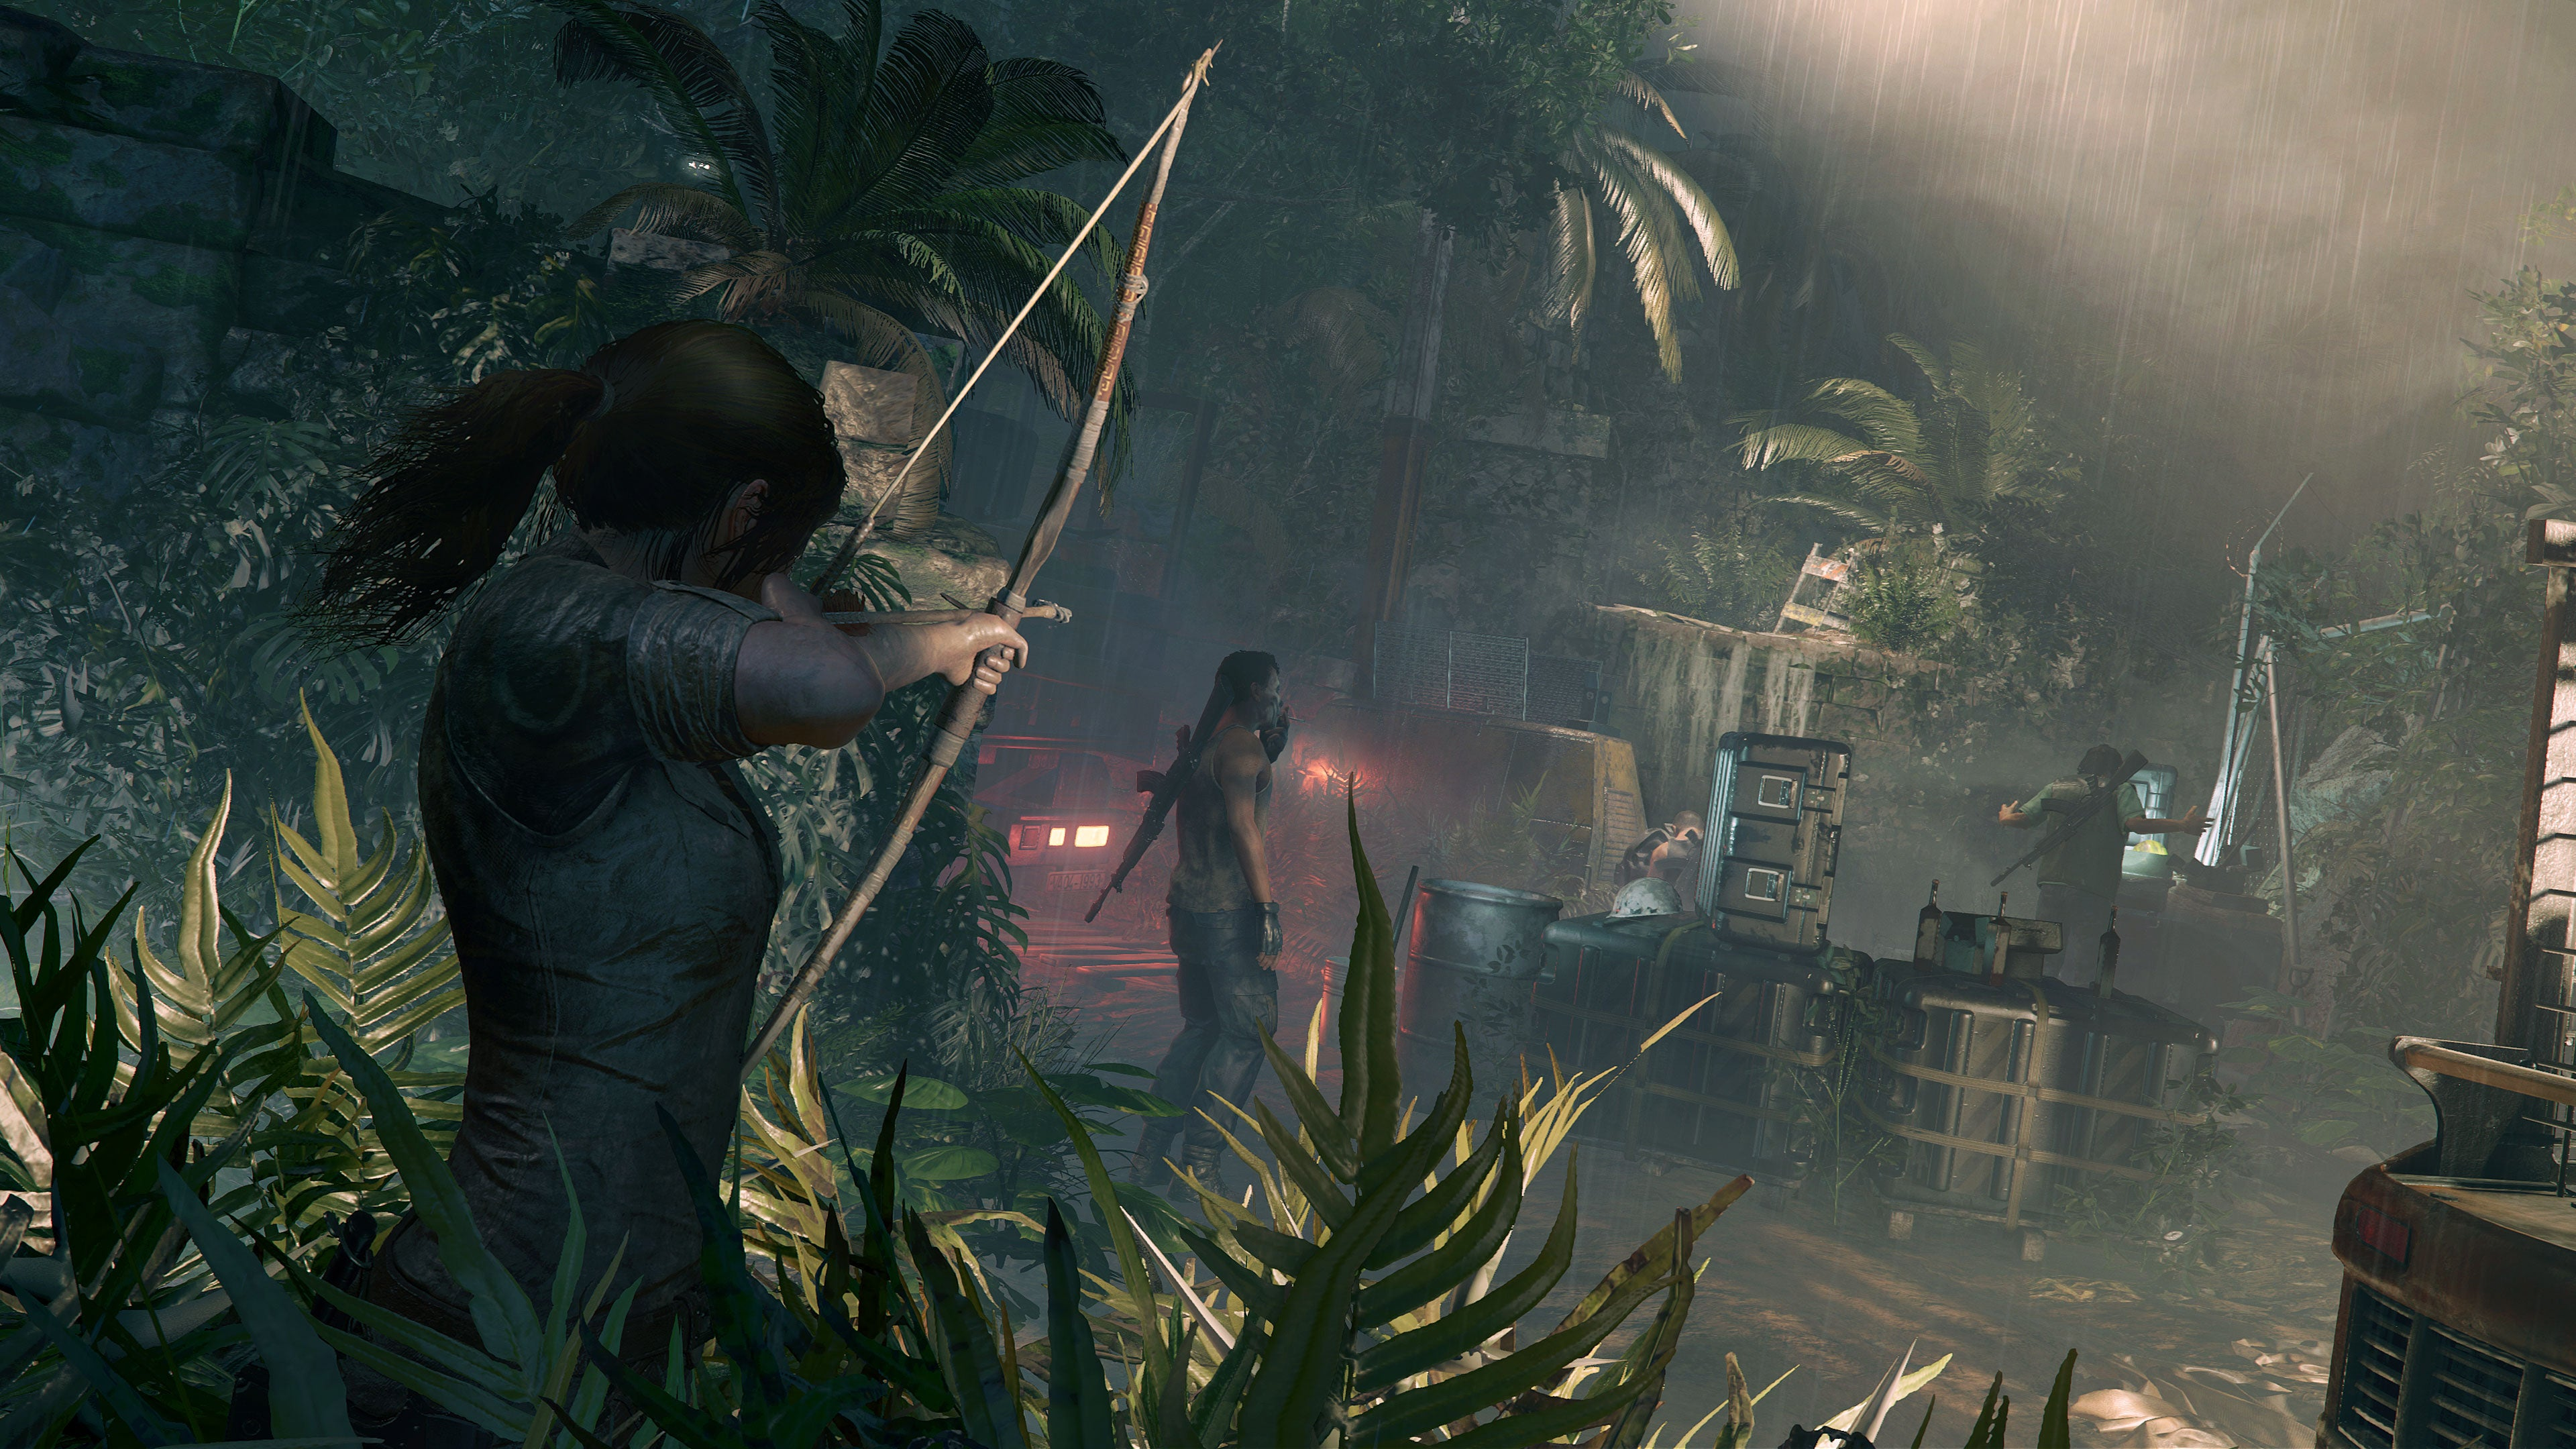 Shadow Of The Tomb Raider Cost $99-$133 Million To Make, Eidos Says